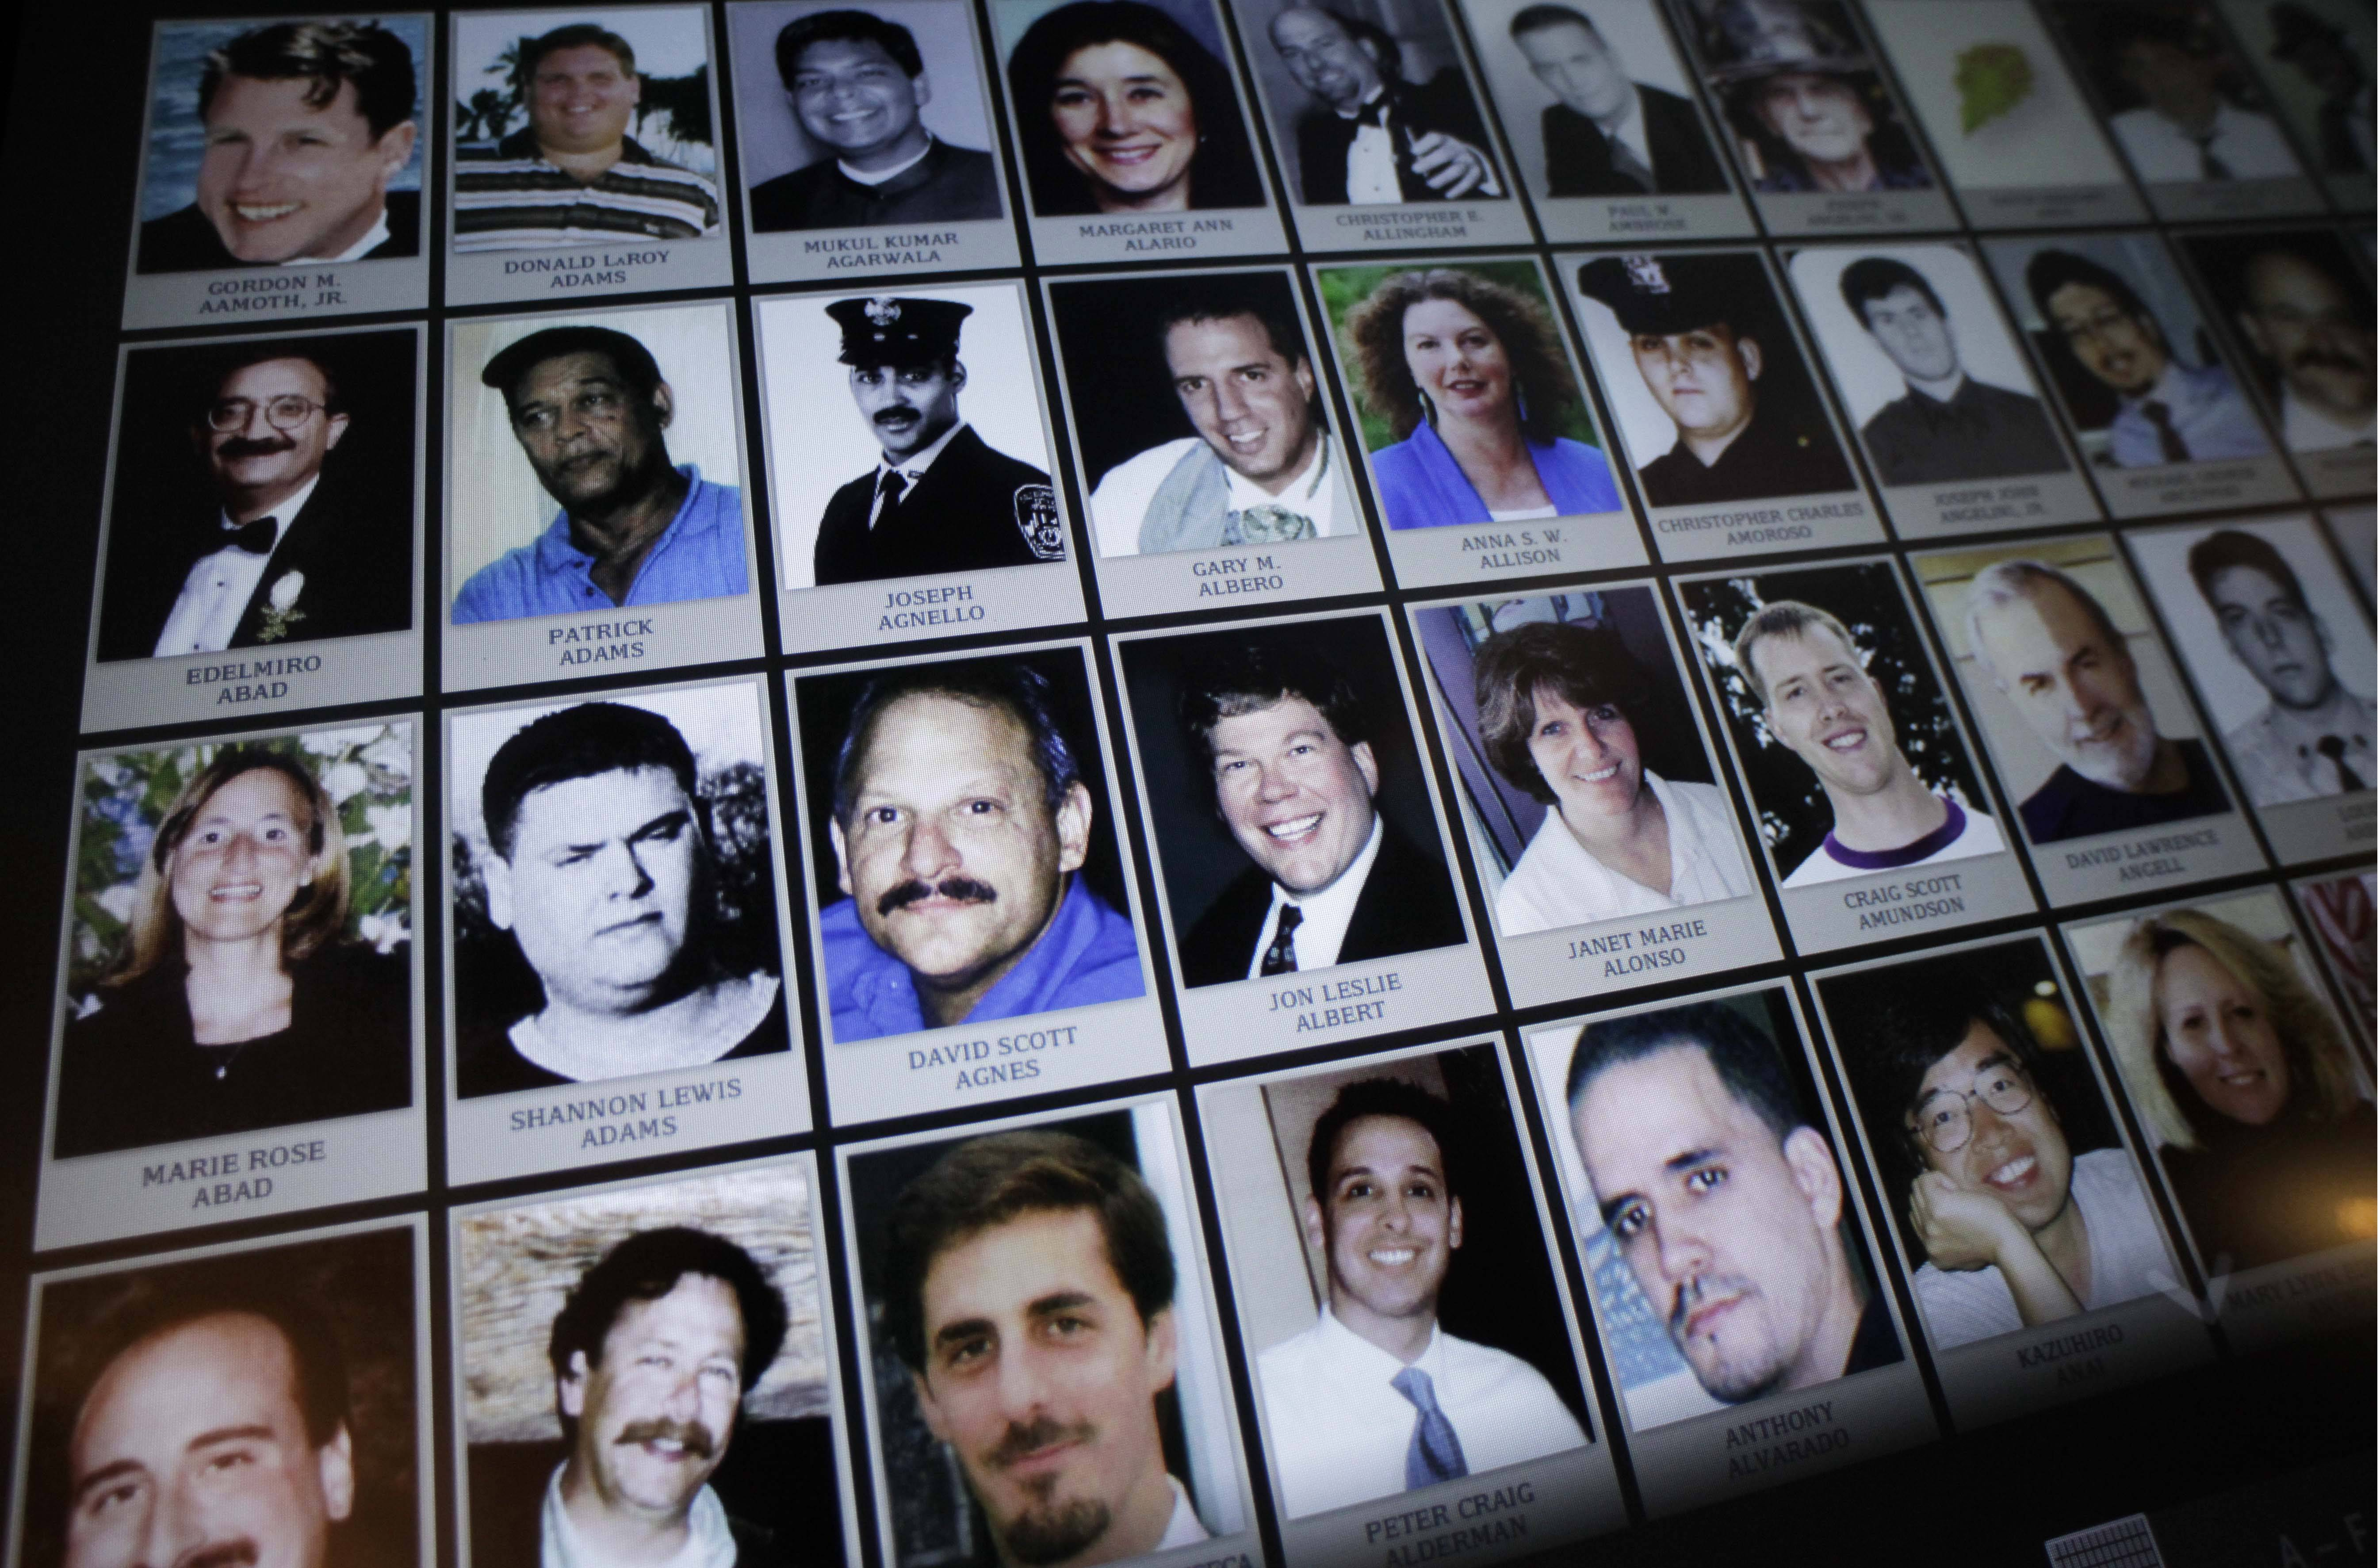 The soon-to-open Sept. 11 museum includes portraits and profiles of the nearly 3,000 people killed by the Sept. 11 attacks and the 1993 trade center bombing.